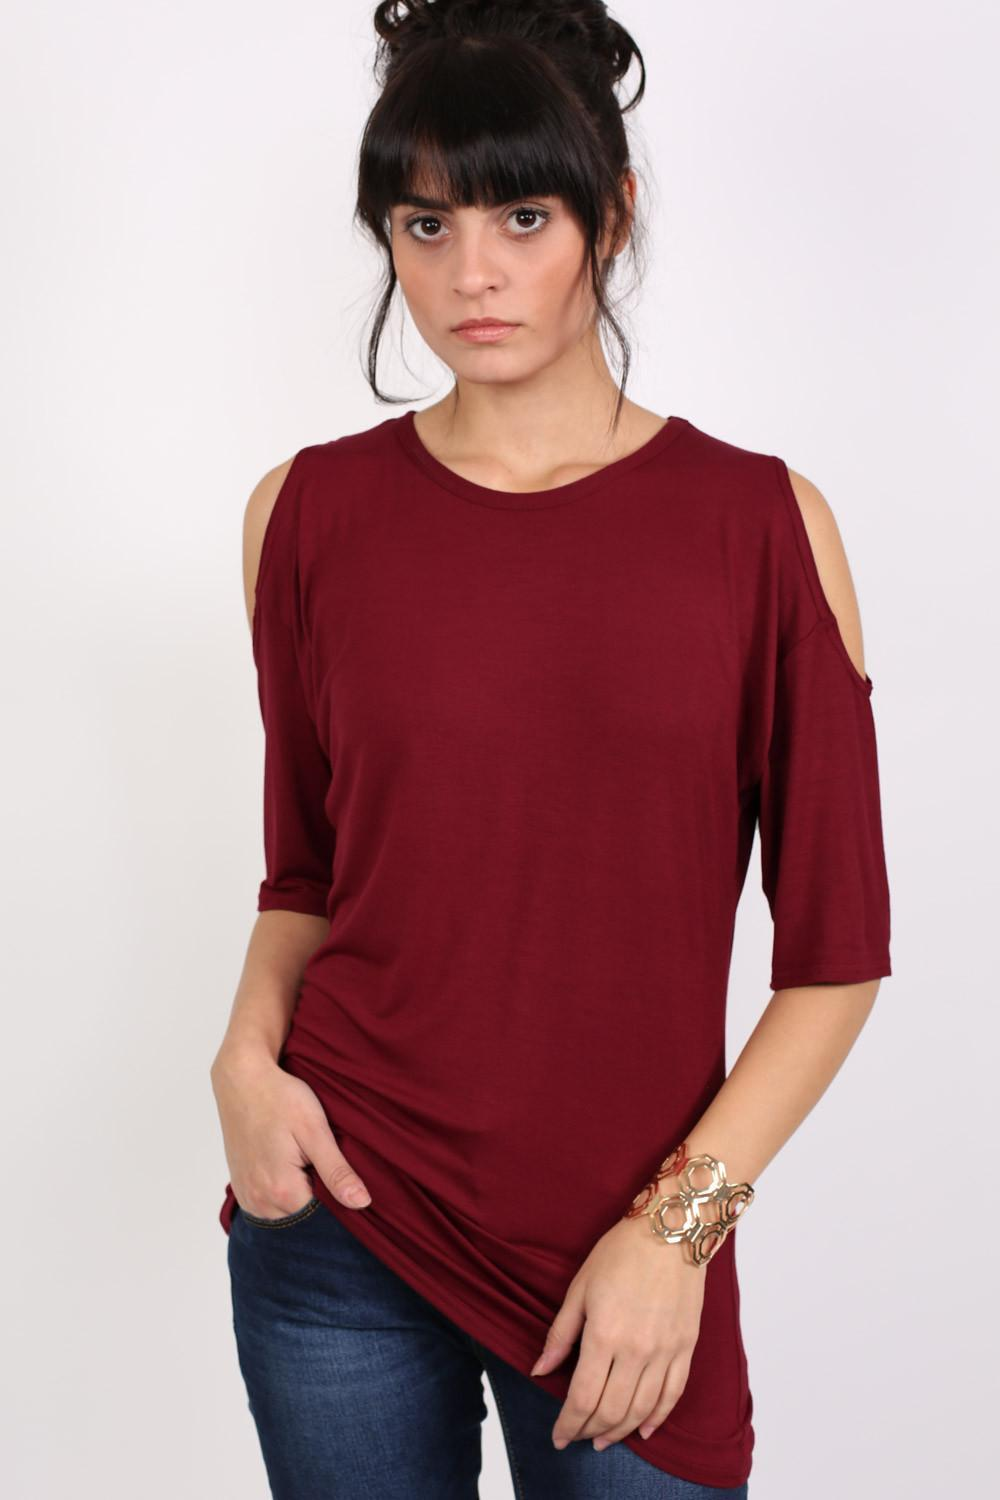 Cold Shoulder Tunic Top in Wine Red 0